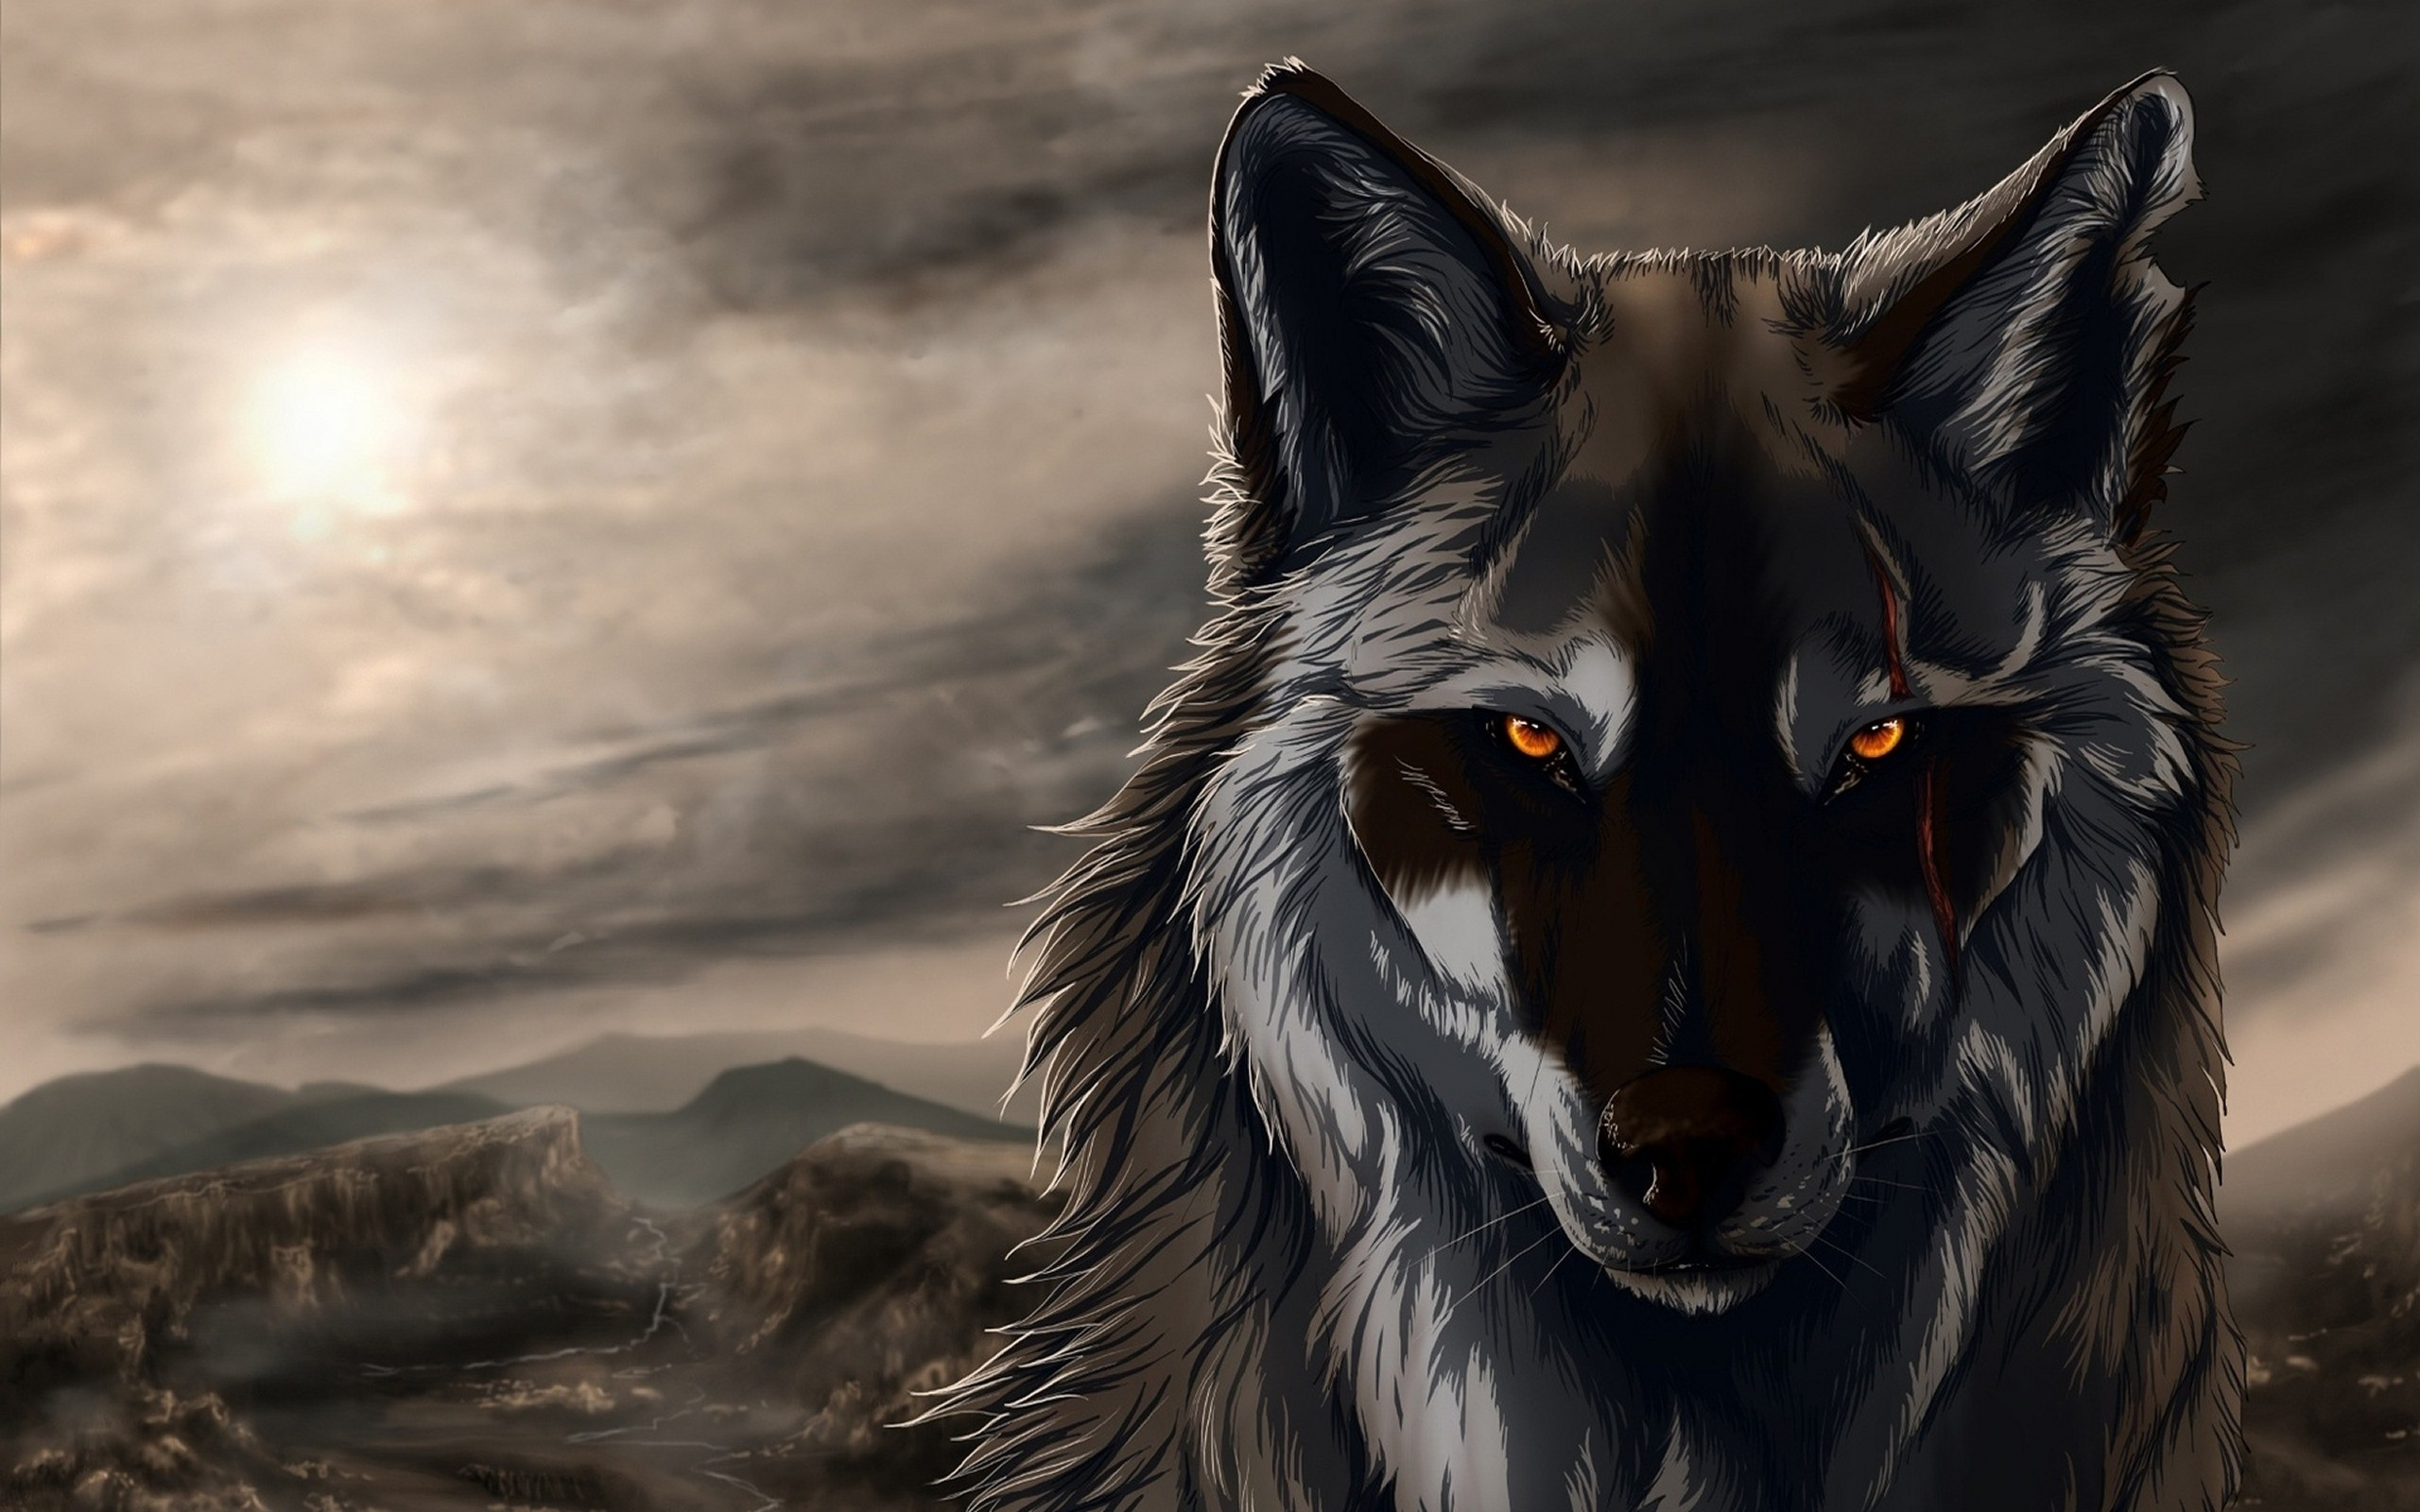 120 Black Wolf Android Iphone Desktop Hd Backgrounds Wallpapers 1080p 4k 2560x1600 2020